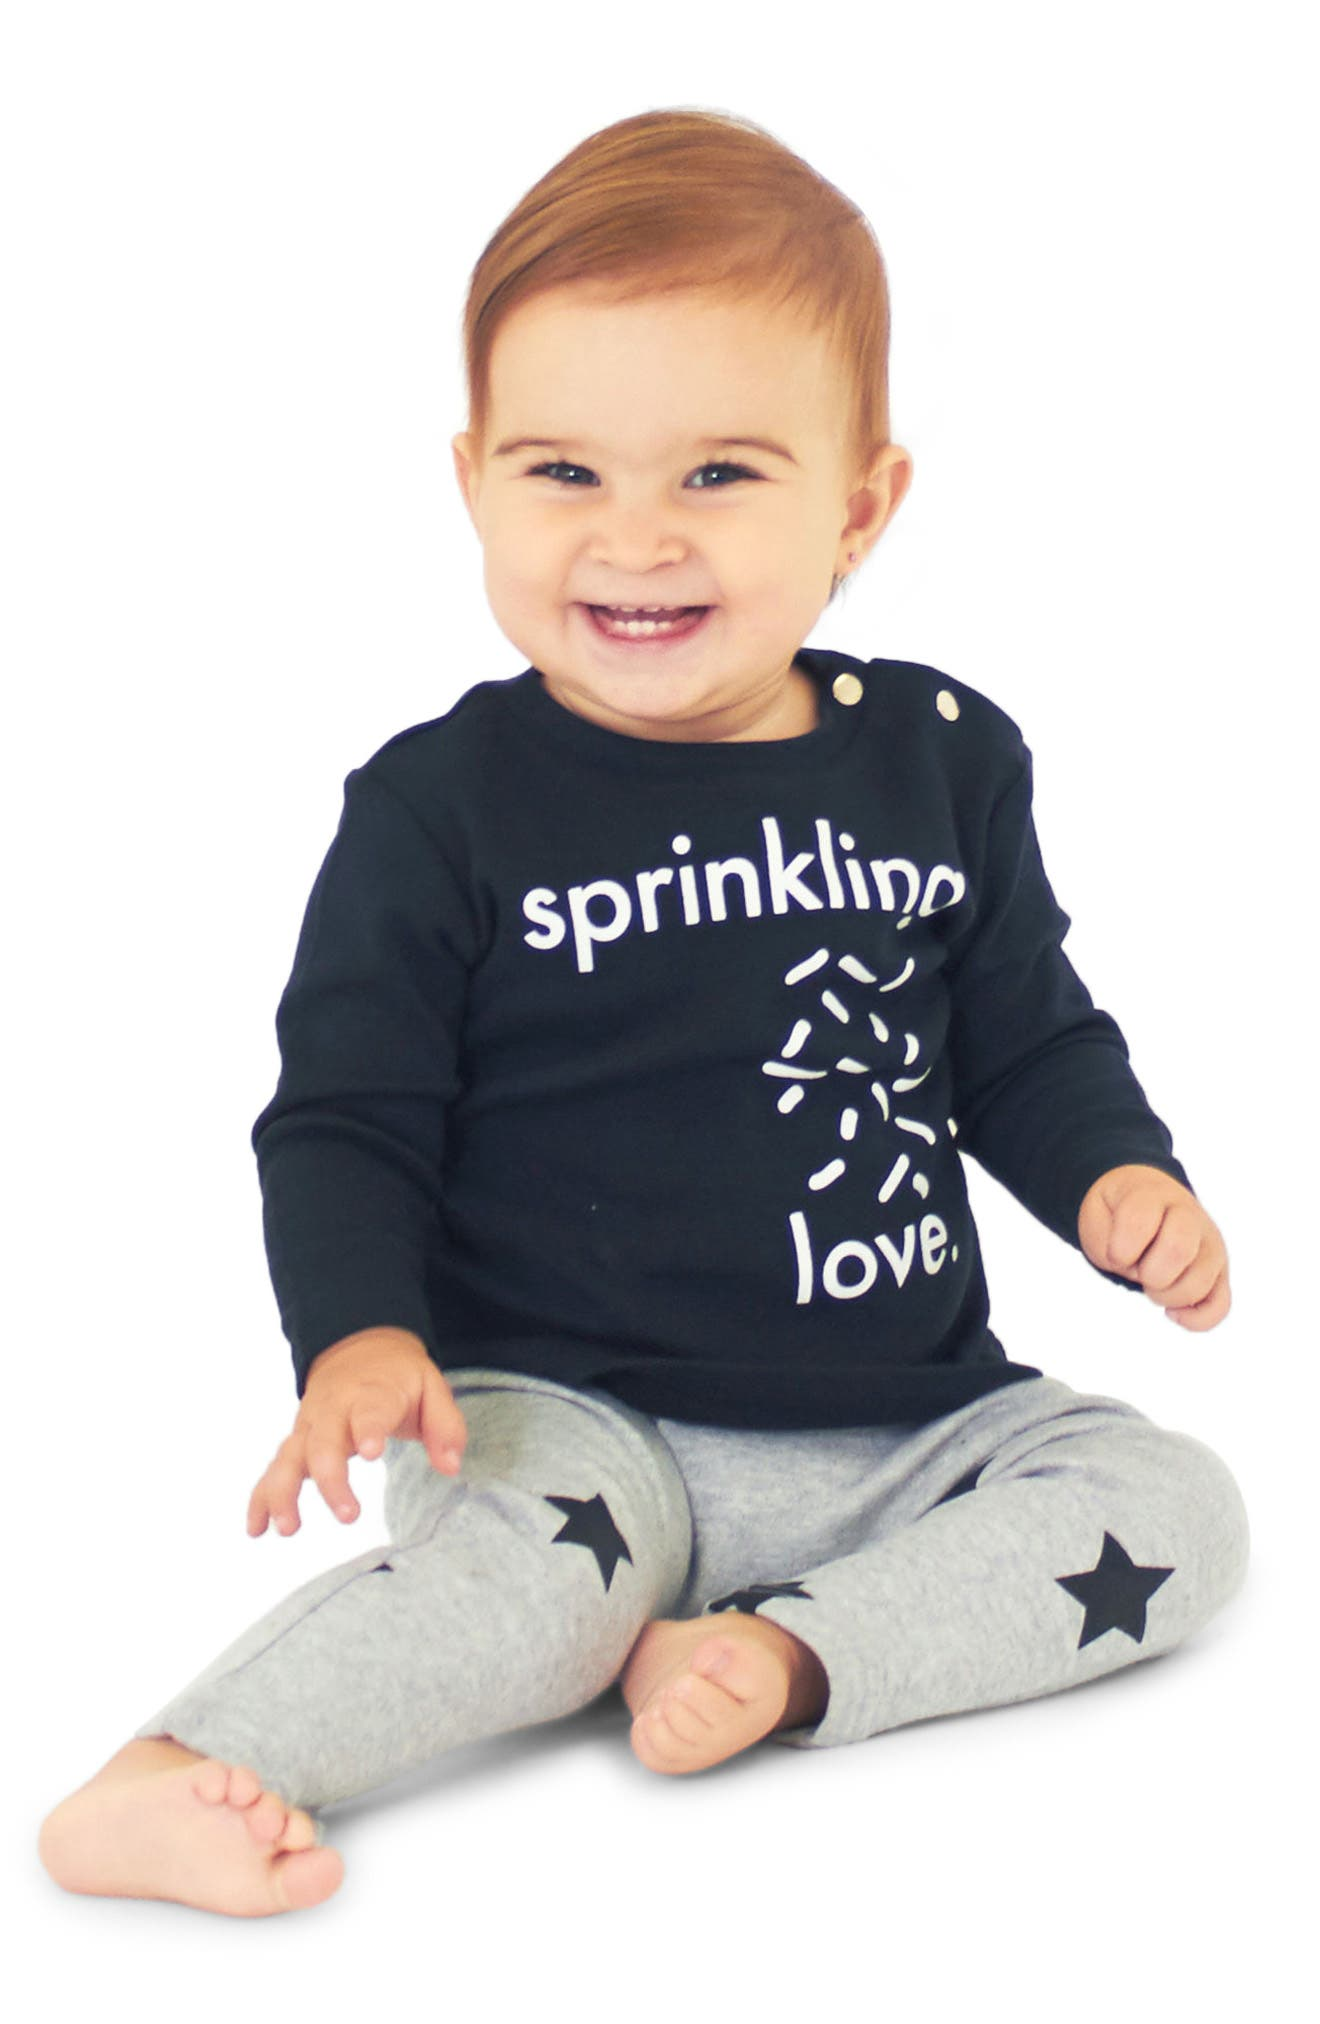 Sprinkling Love Graphic Tee & Leggings Set,                             Alternate thumbnail 2, color,                             Black And Grey